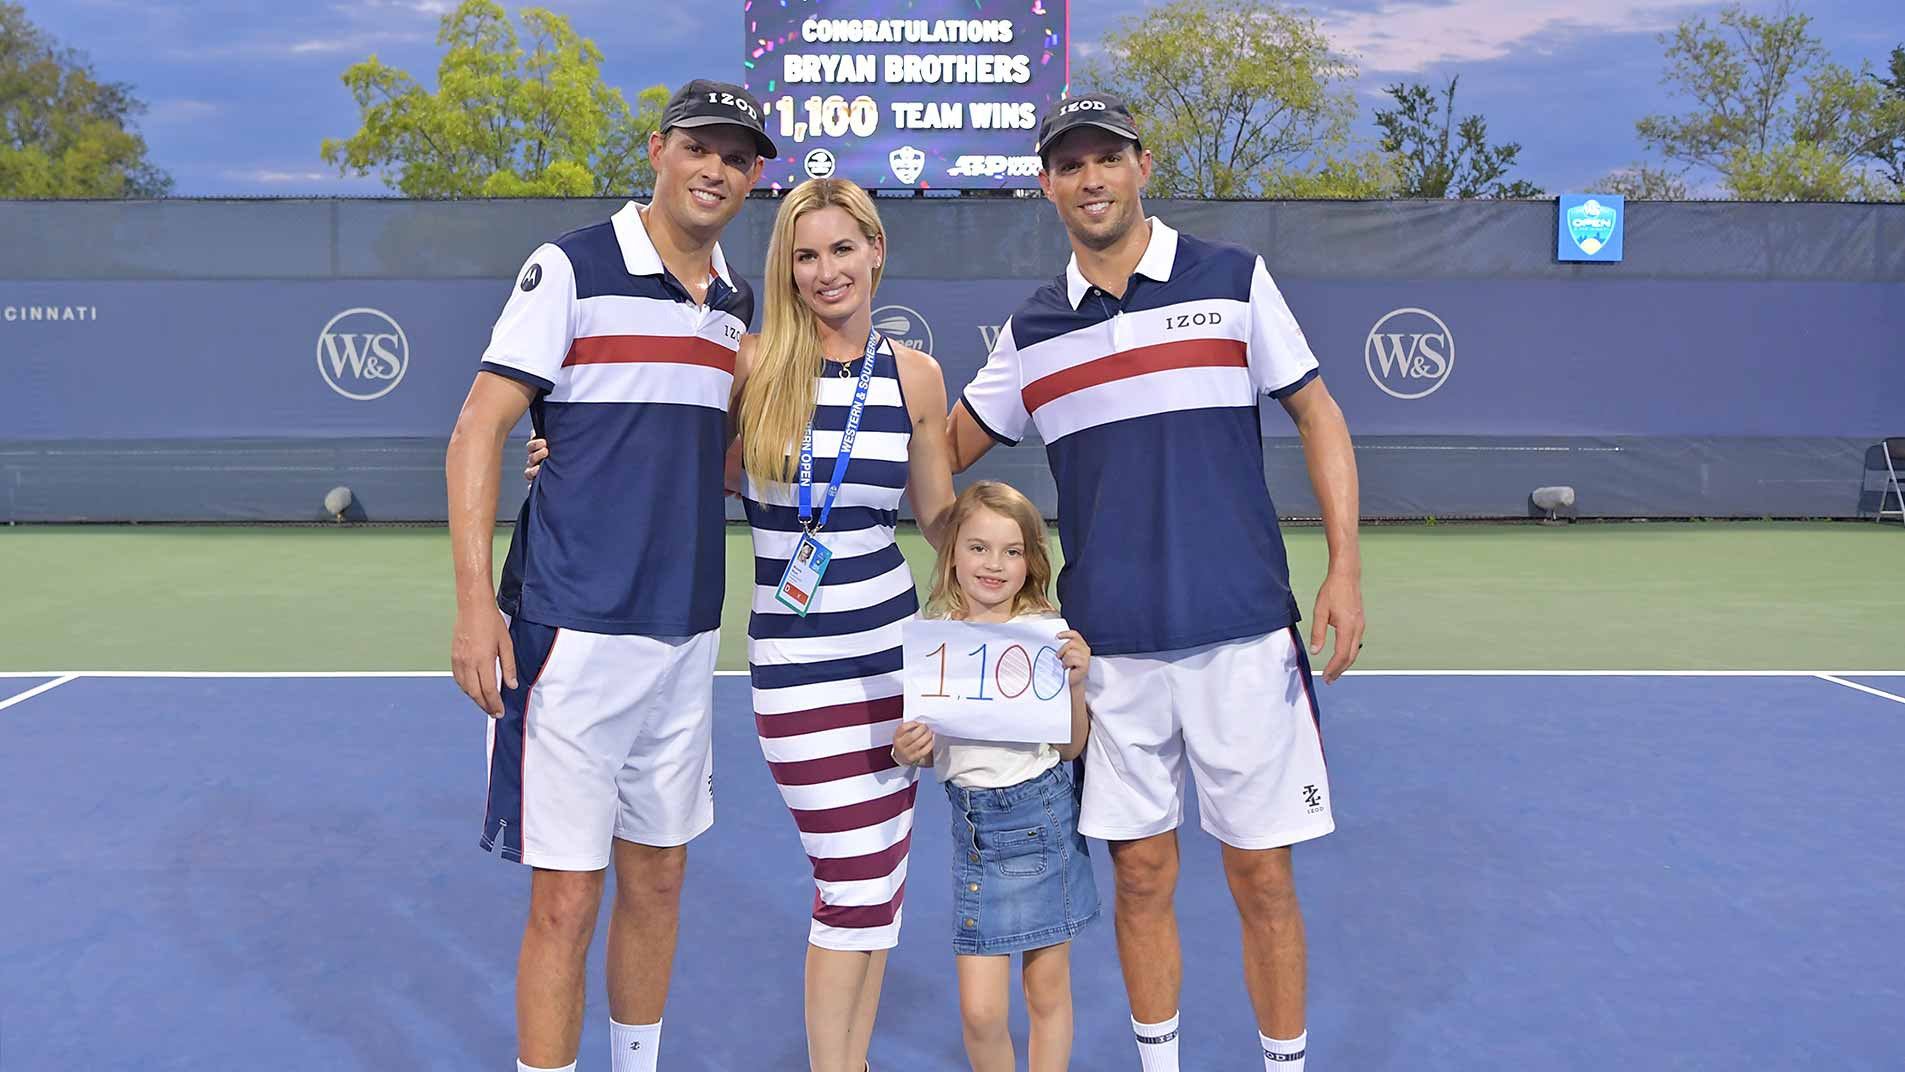 Bob Bryan with wife Michelle, daughter Micaela and brother Mike Bryan, celebrating the Bryan brothers' 1100th team win.